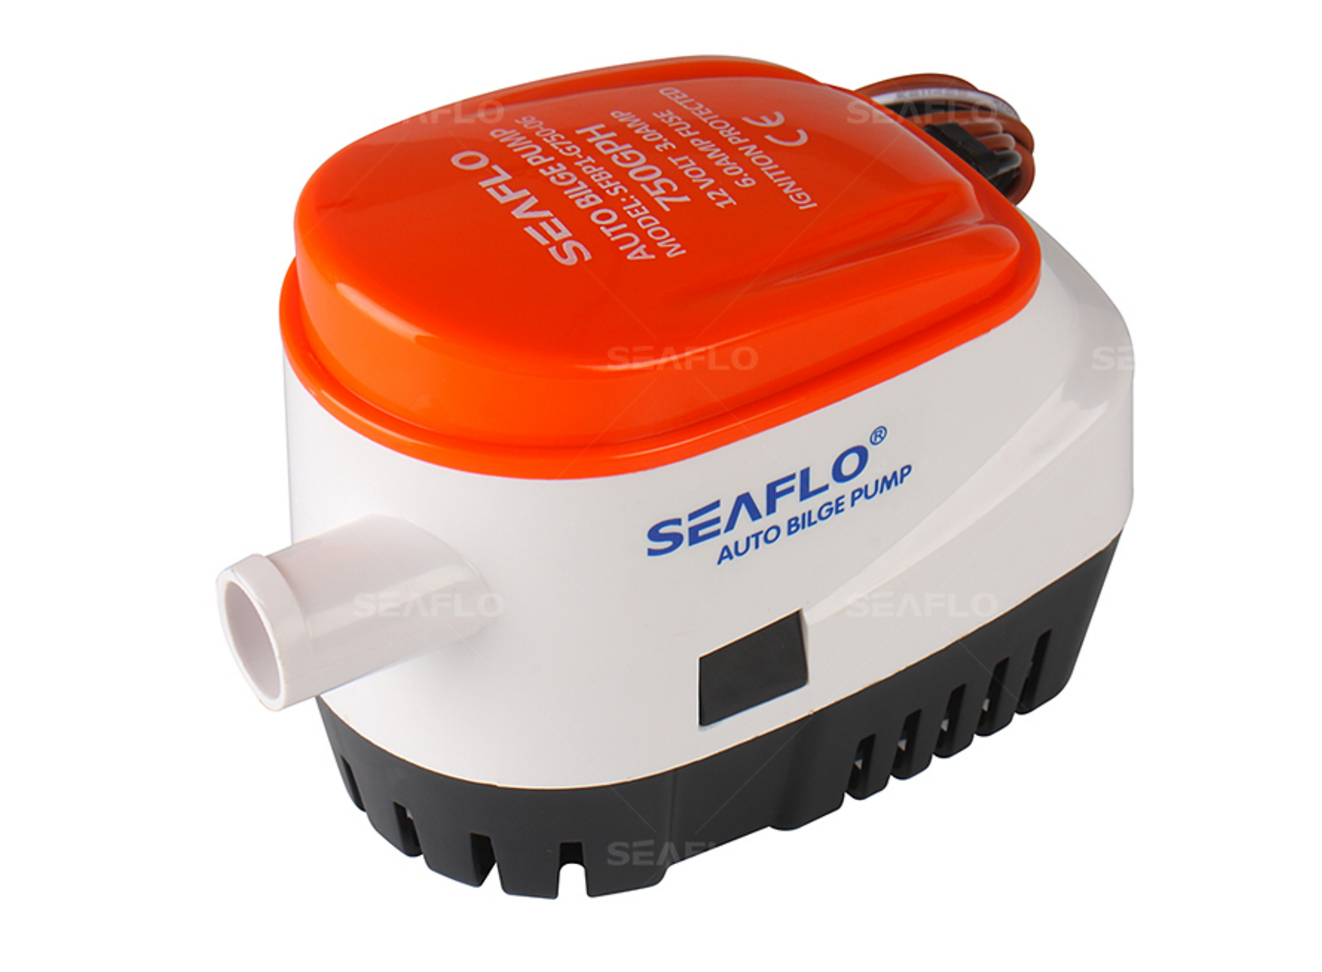 750 gph automatic bilge pump - seafresh marine